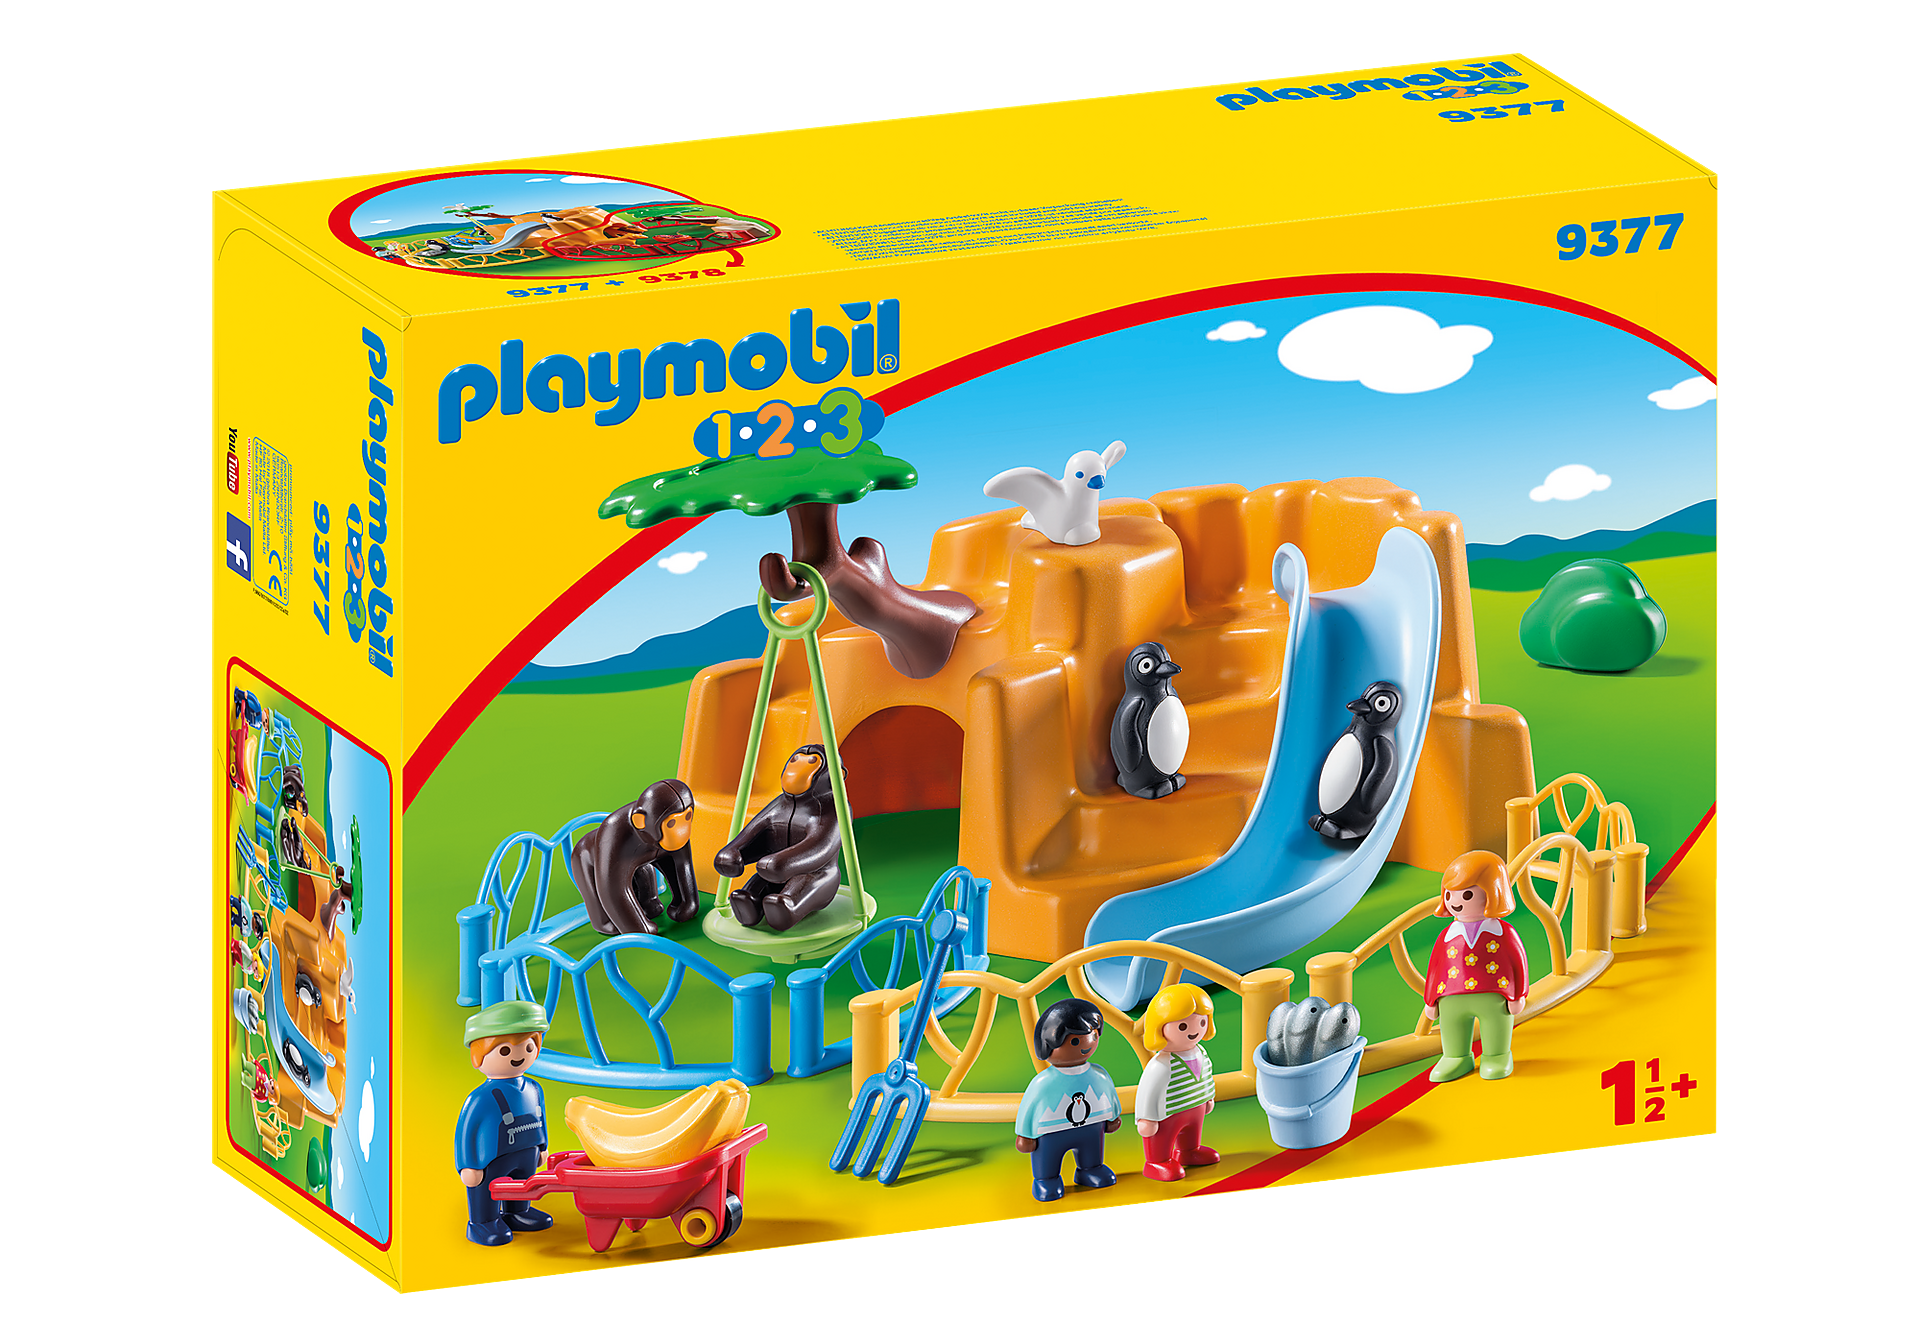 http://media.playmobil.com/i/playmobil/9377_product_box_front/Djurpark